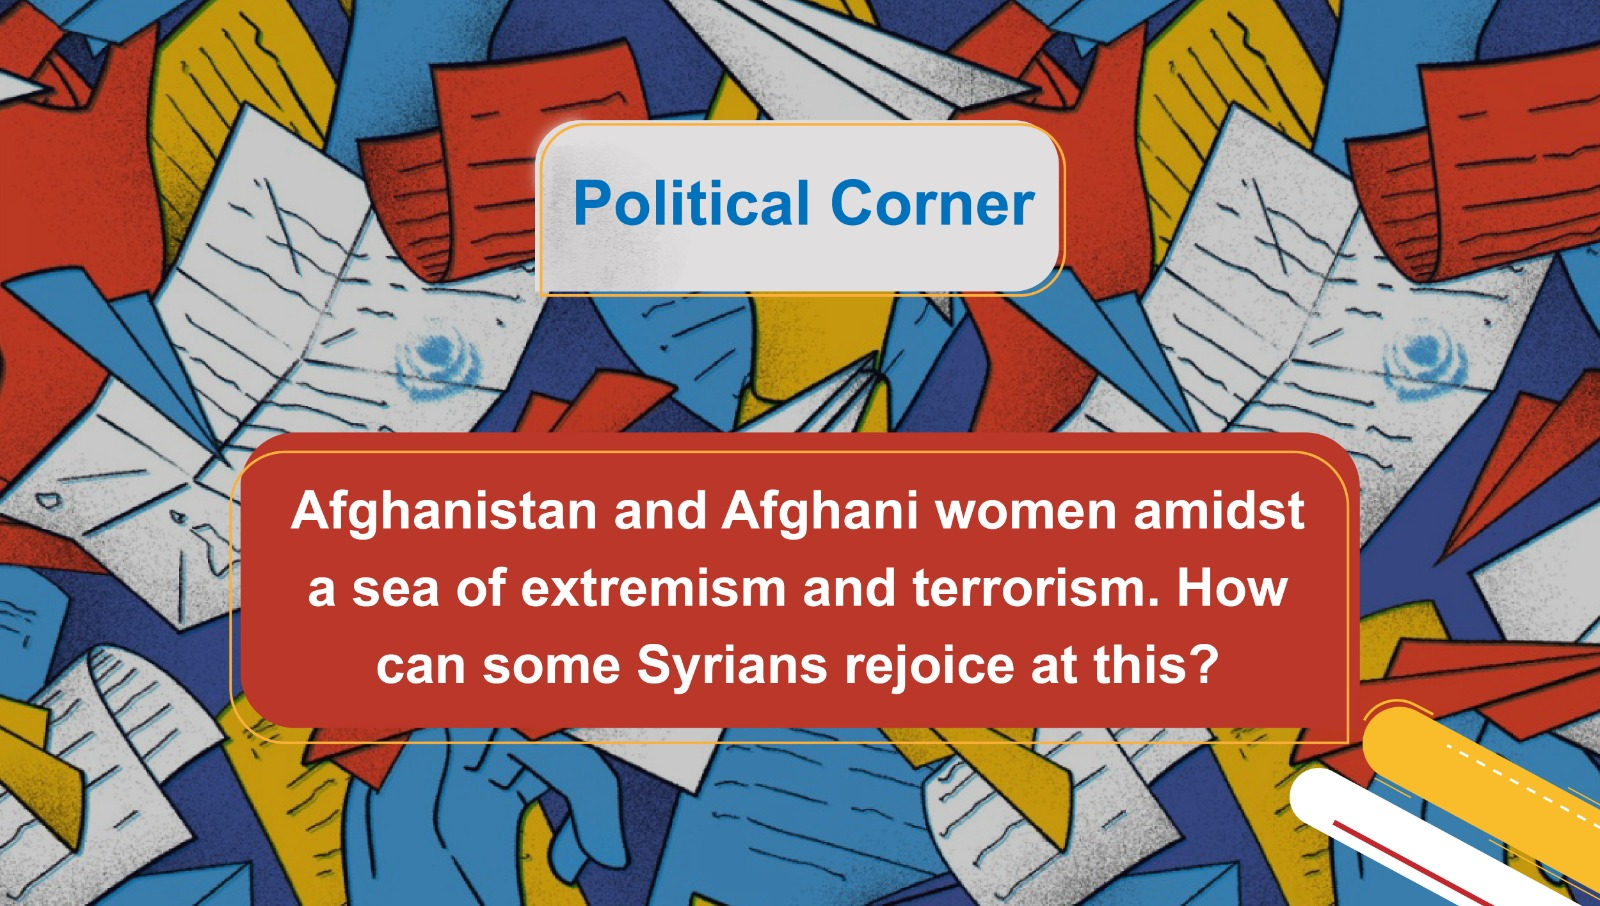 Afghanistan and Afghani women amidst a sea of extremism and terrorism